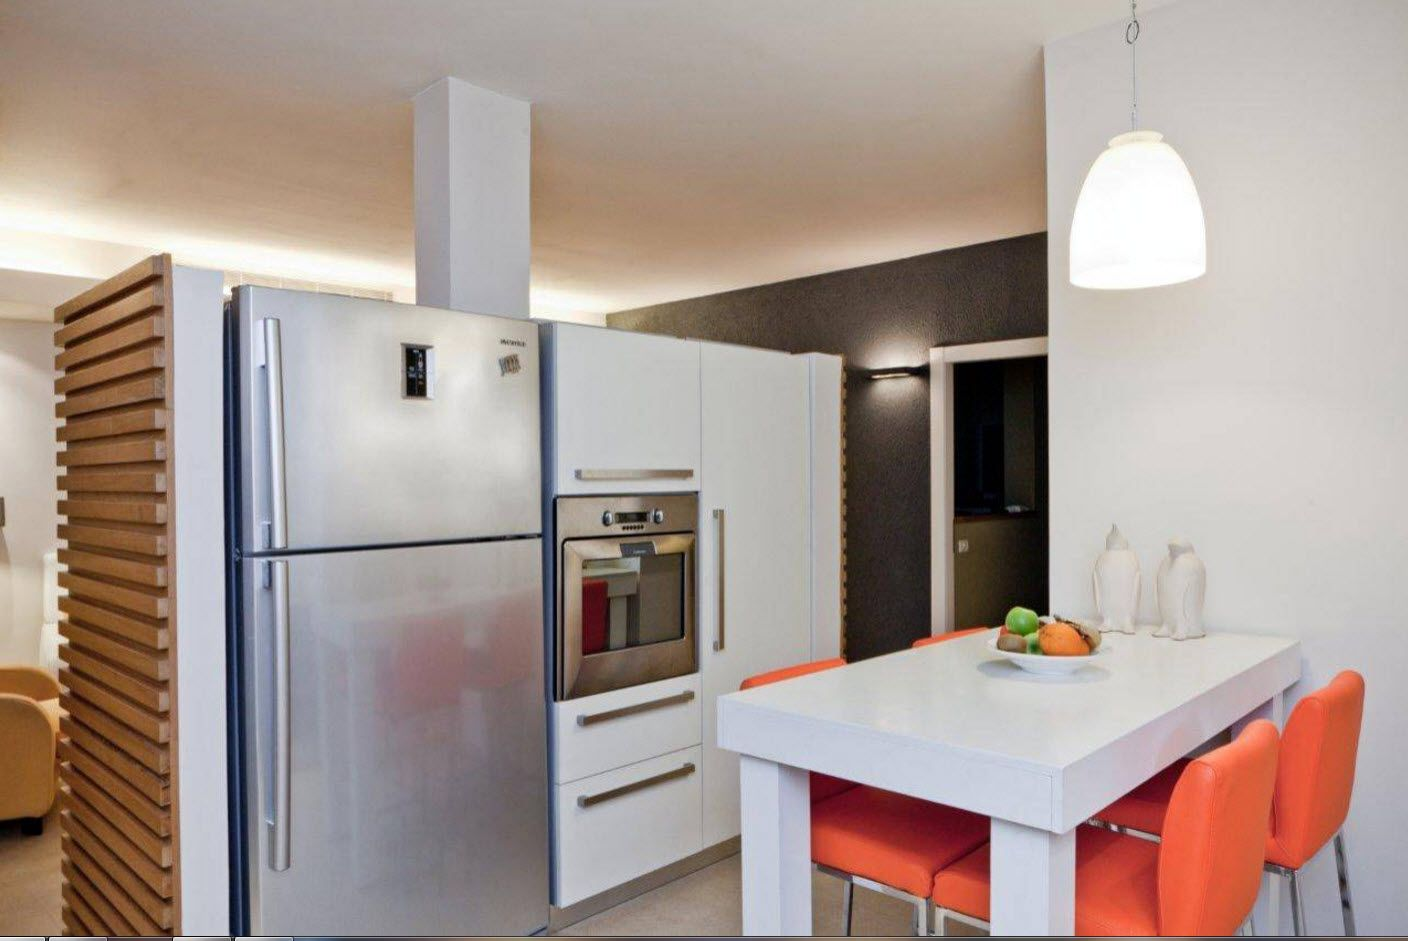 Apartment Interior Design Inspiration Ideas & Trends 2017. Steel surfaces of fridge and oven at the ultramodern kitchen